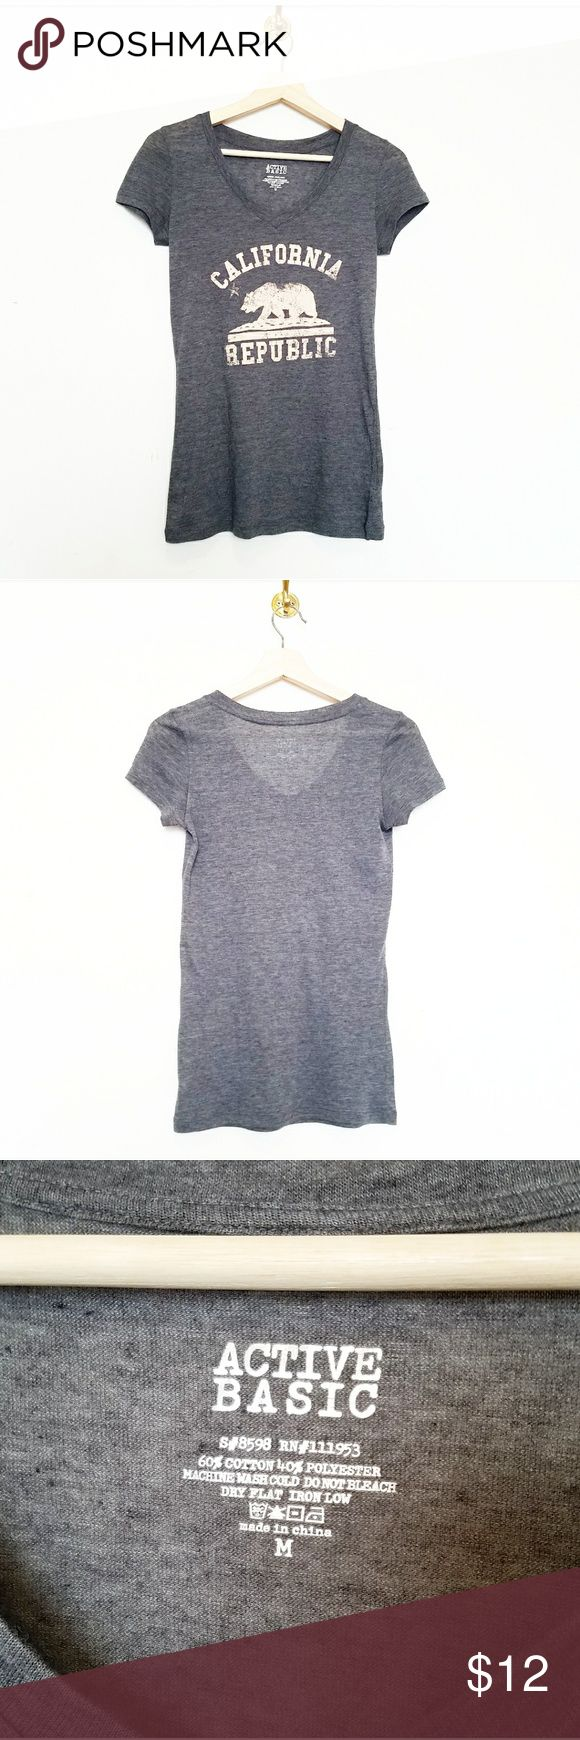 """NWOT Gray Basic Graphic Tee California Republic NWOT Gray Basic Graphic Tee California Republic. Features California State Flag Design """"California Republic"""" Size Medium 60% Cotton 40% Polyester. Very Comfortable and soft Material. Tops Tees - Short Sleeve"""